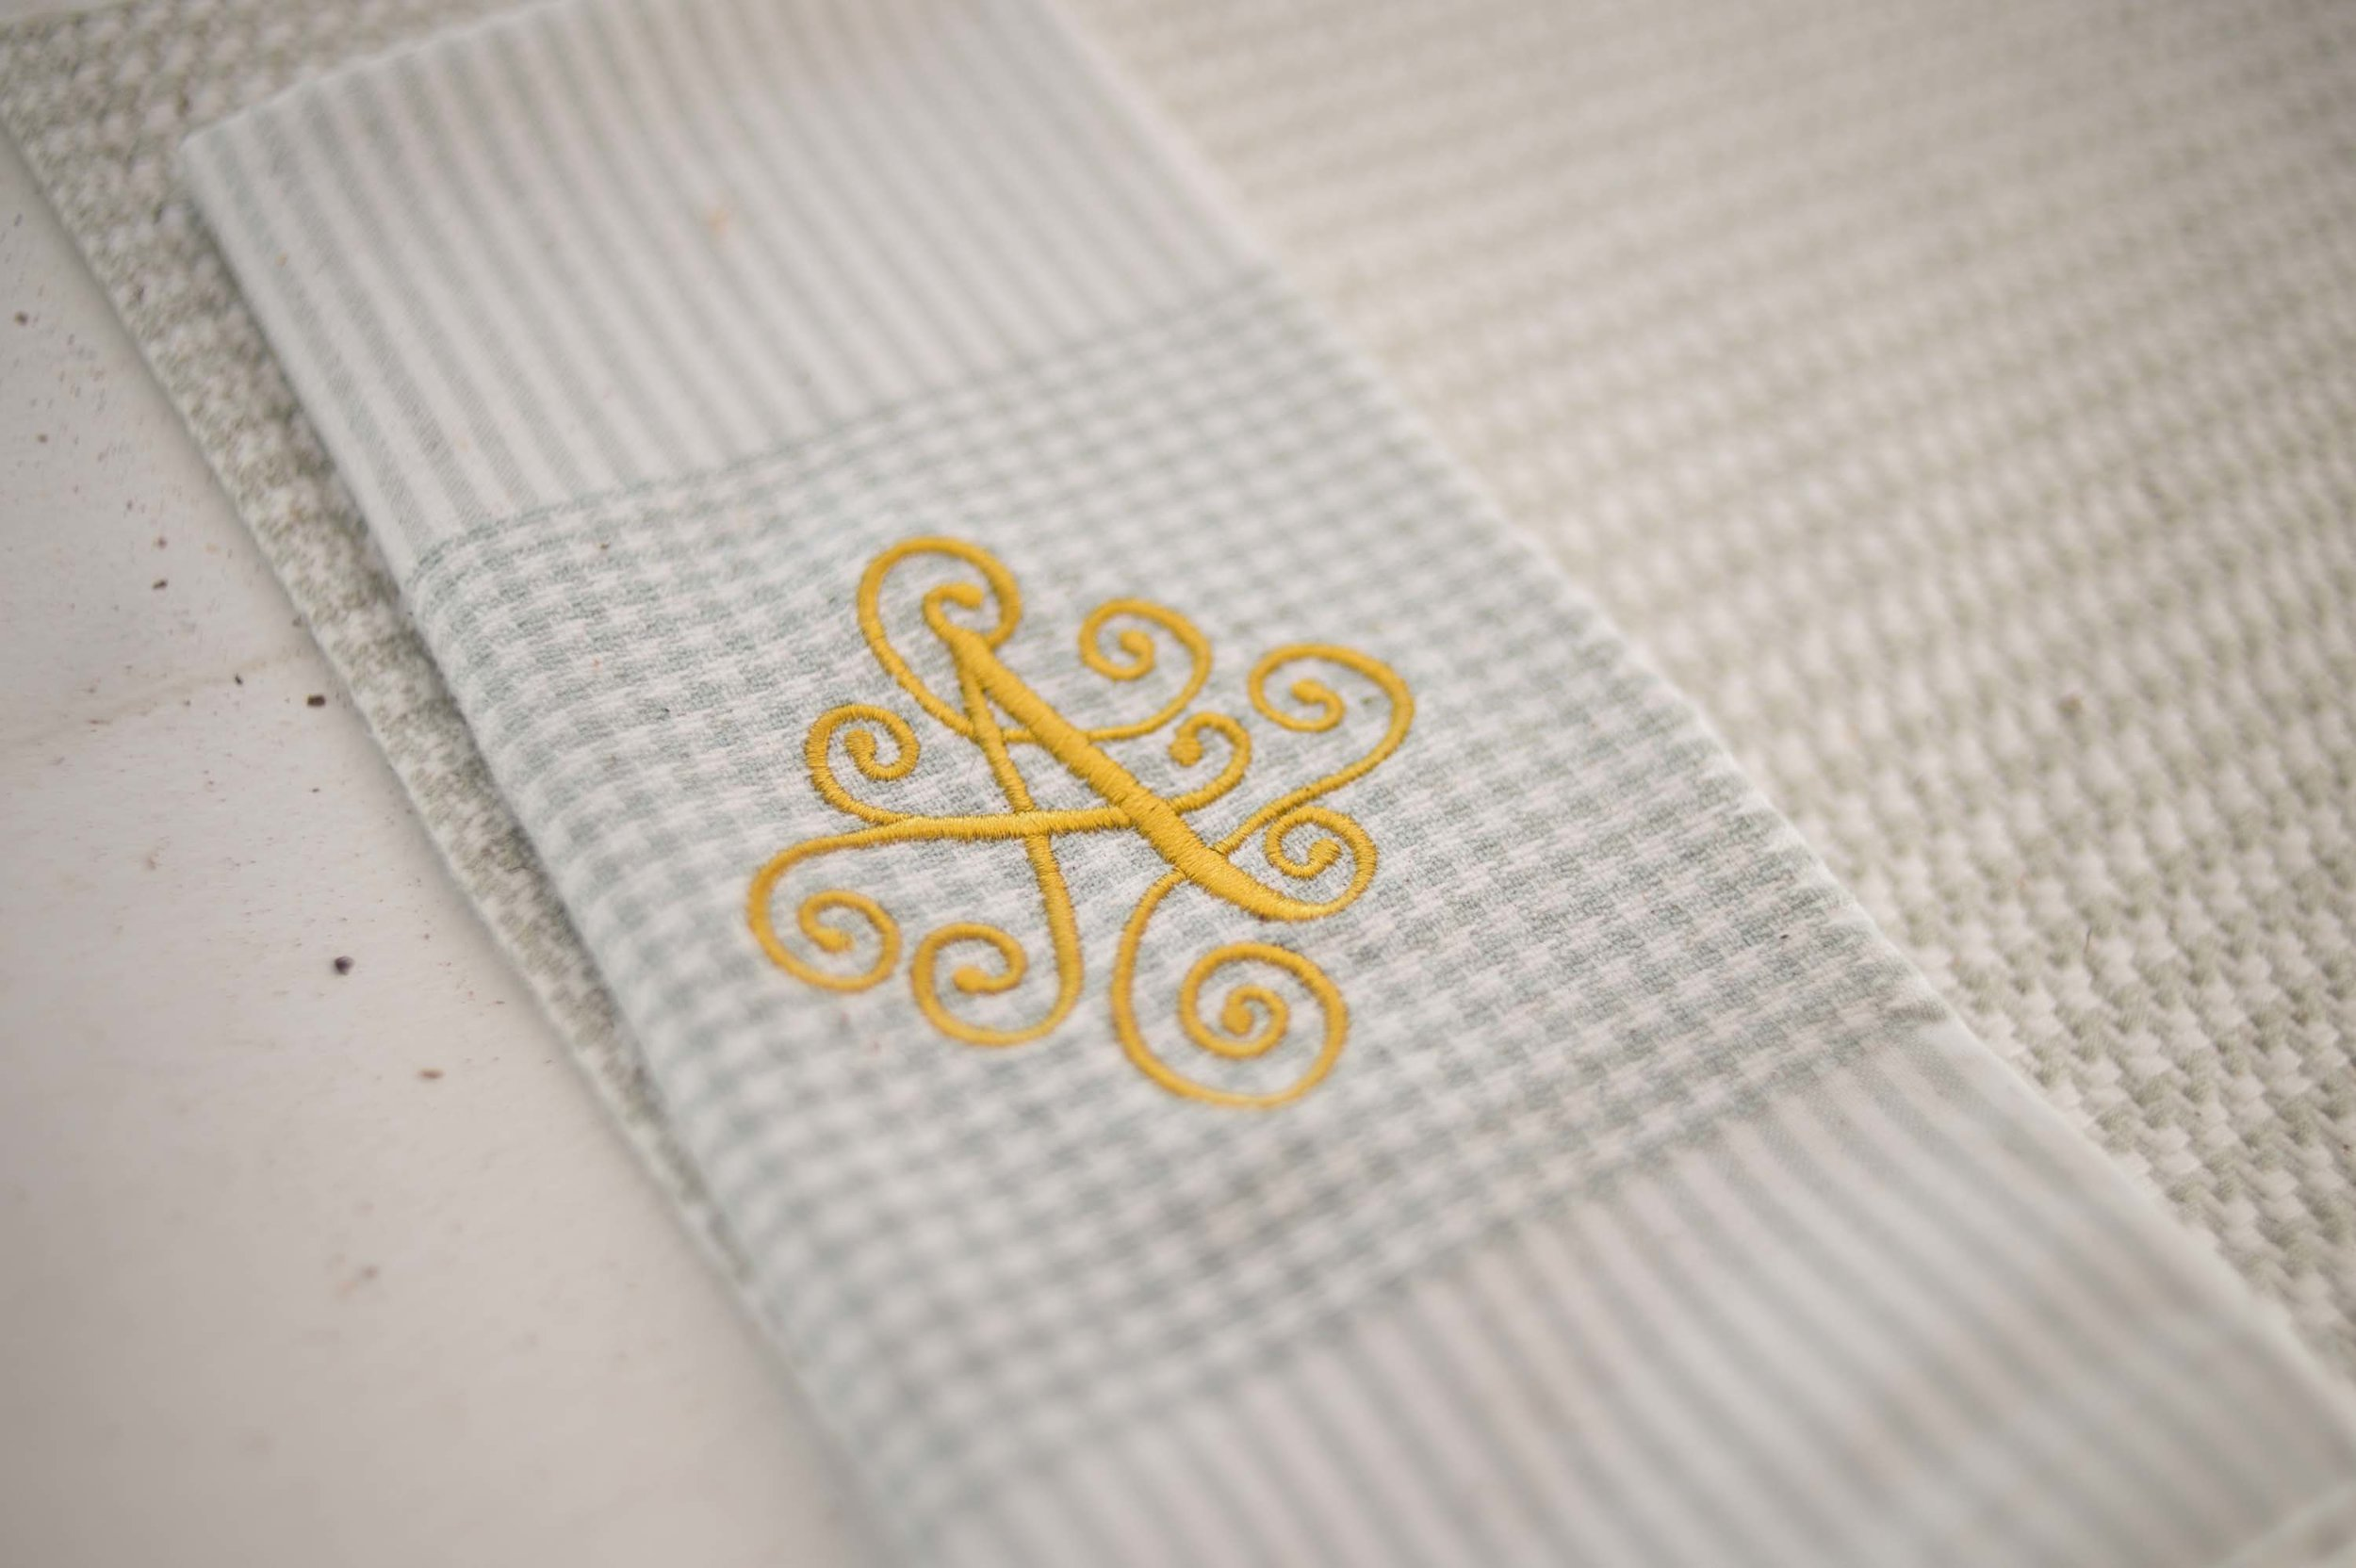 Embroidered initial on a fabric